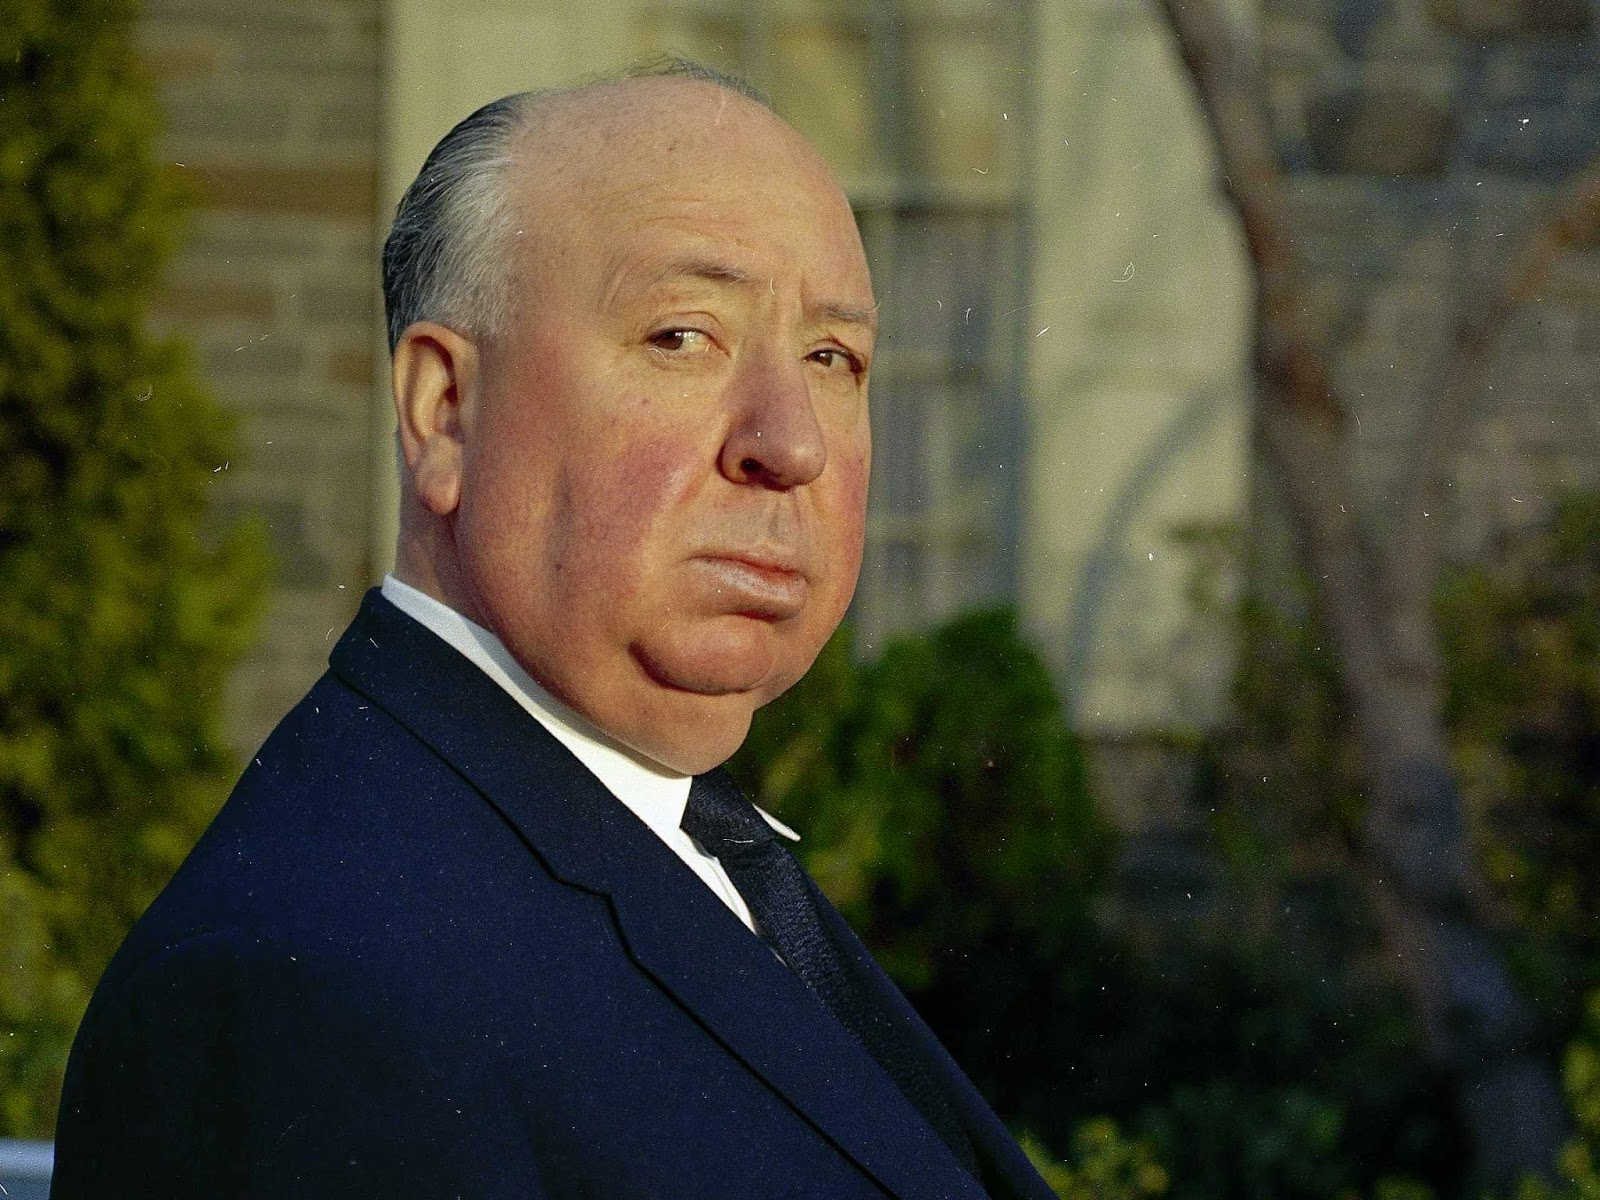 Alfred Hitchcock affairs